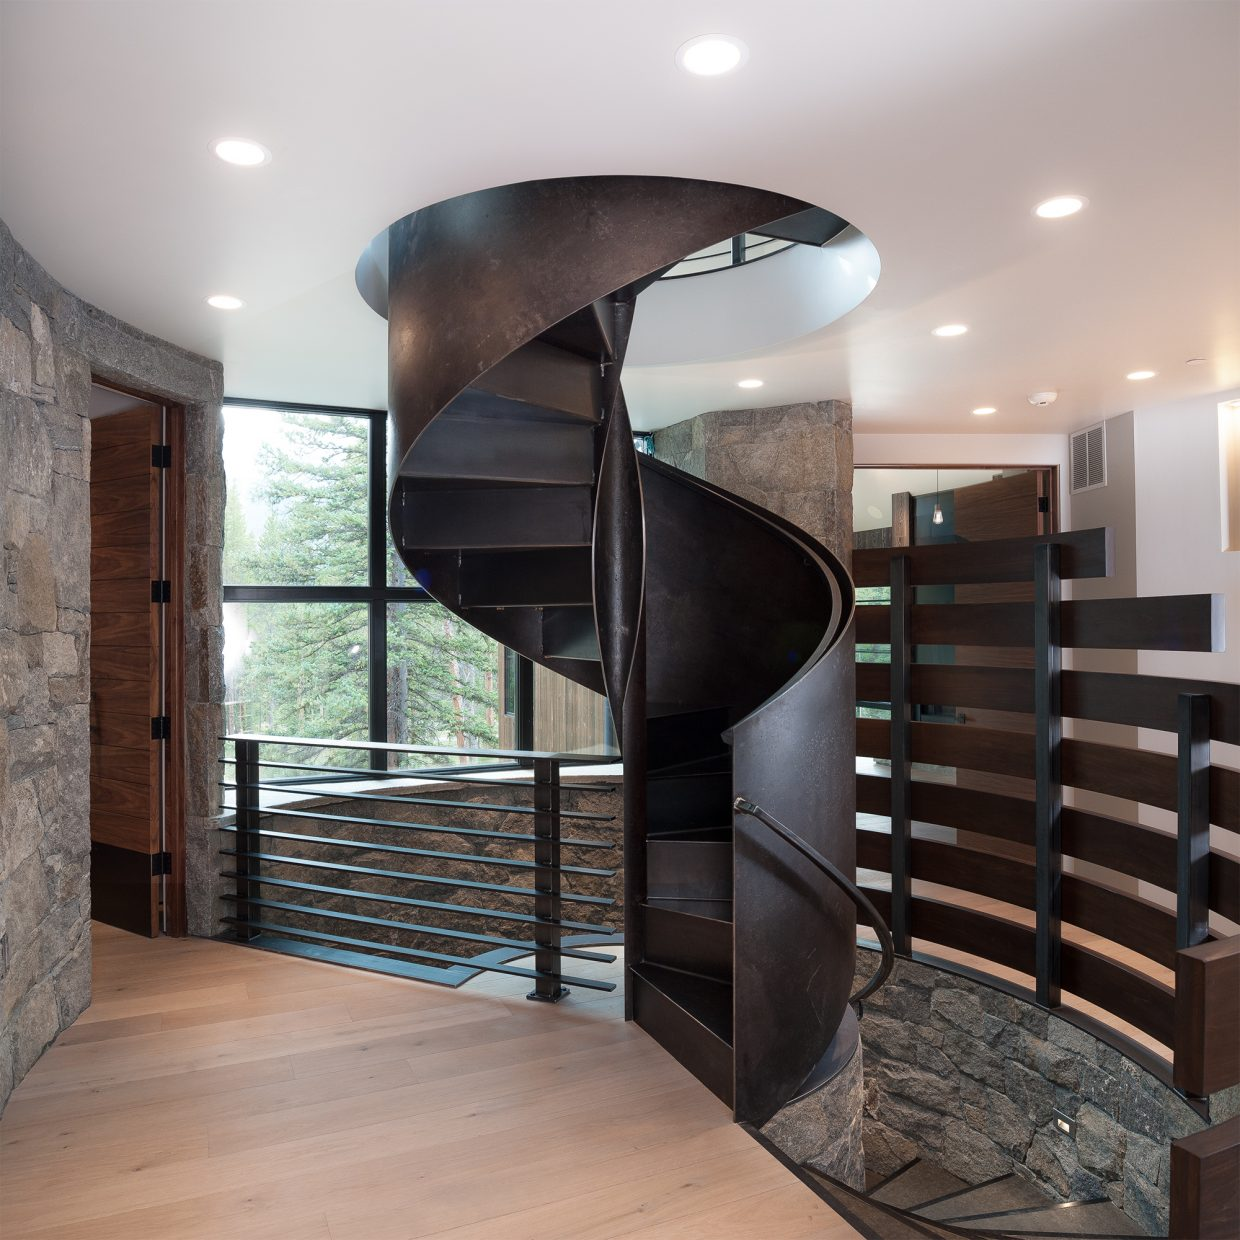 The highlight of the home is a large, steel staircase that was fabricated in Switzerland and craned into the home. Beneath it, a spiraling stone was implemented, based on a French castle. Photo courtesy Geoff Llerena